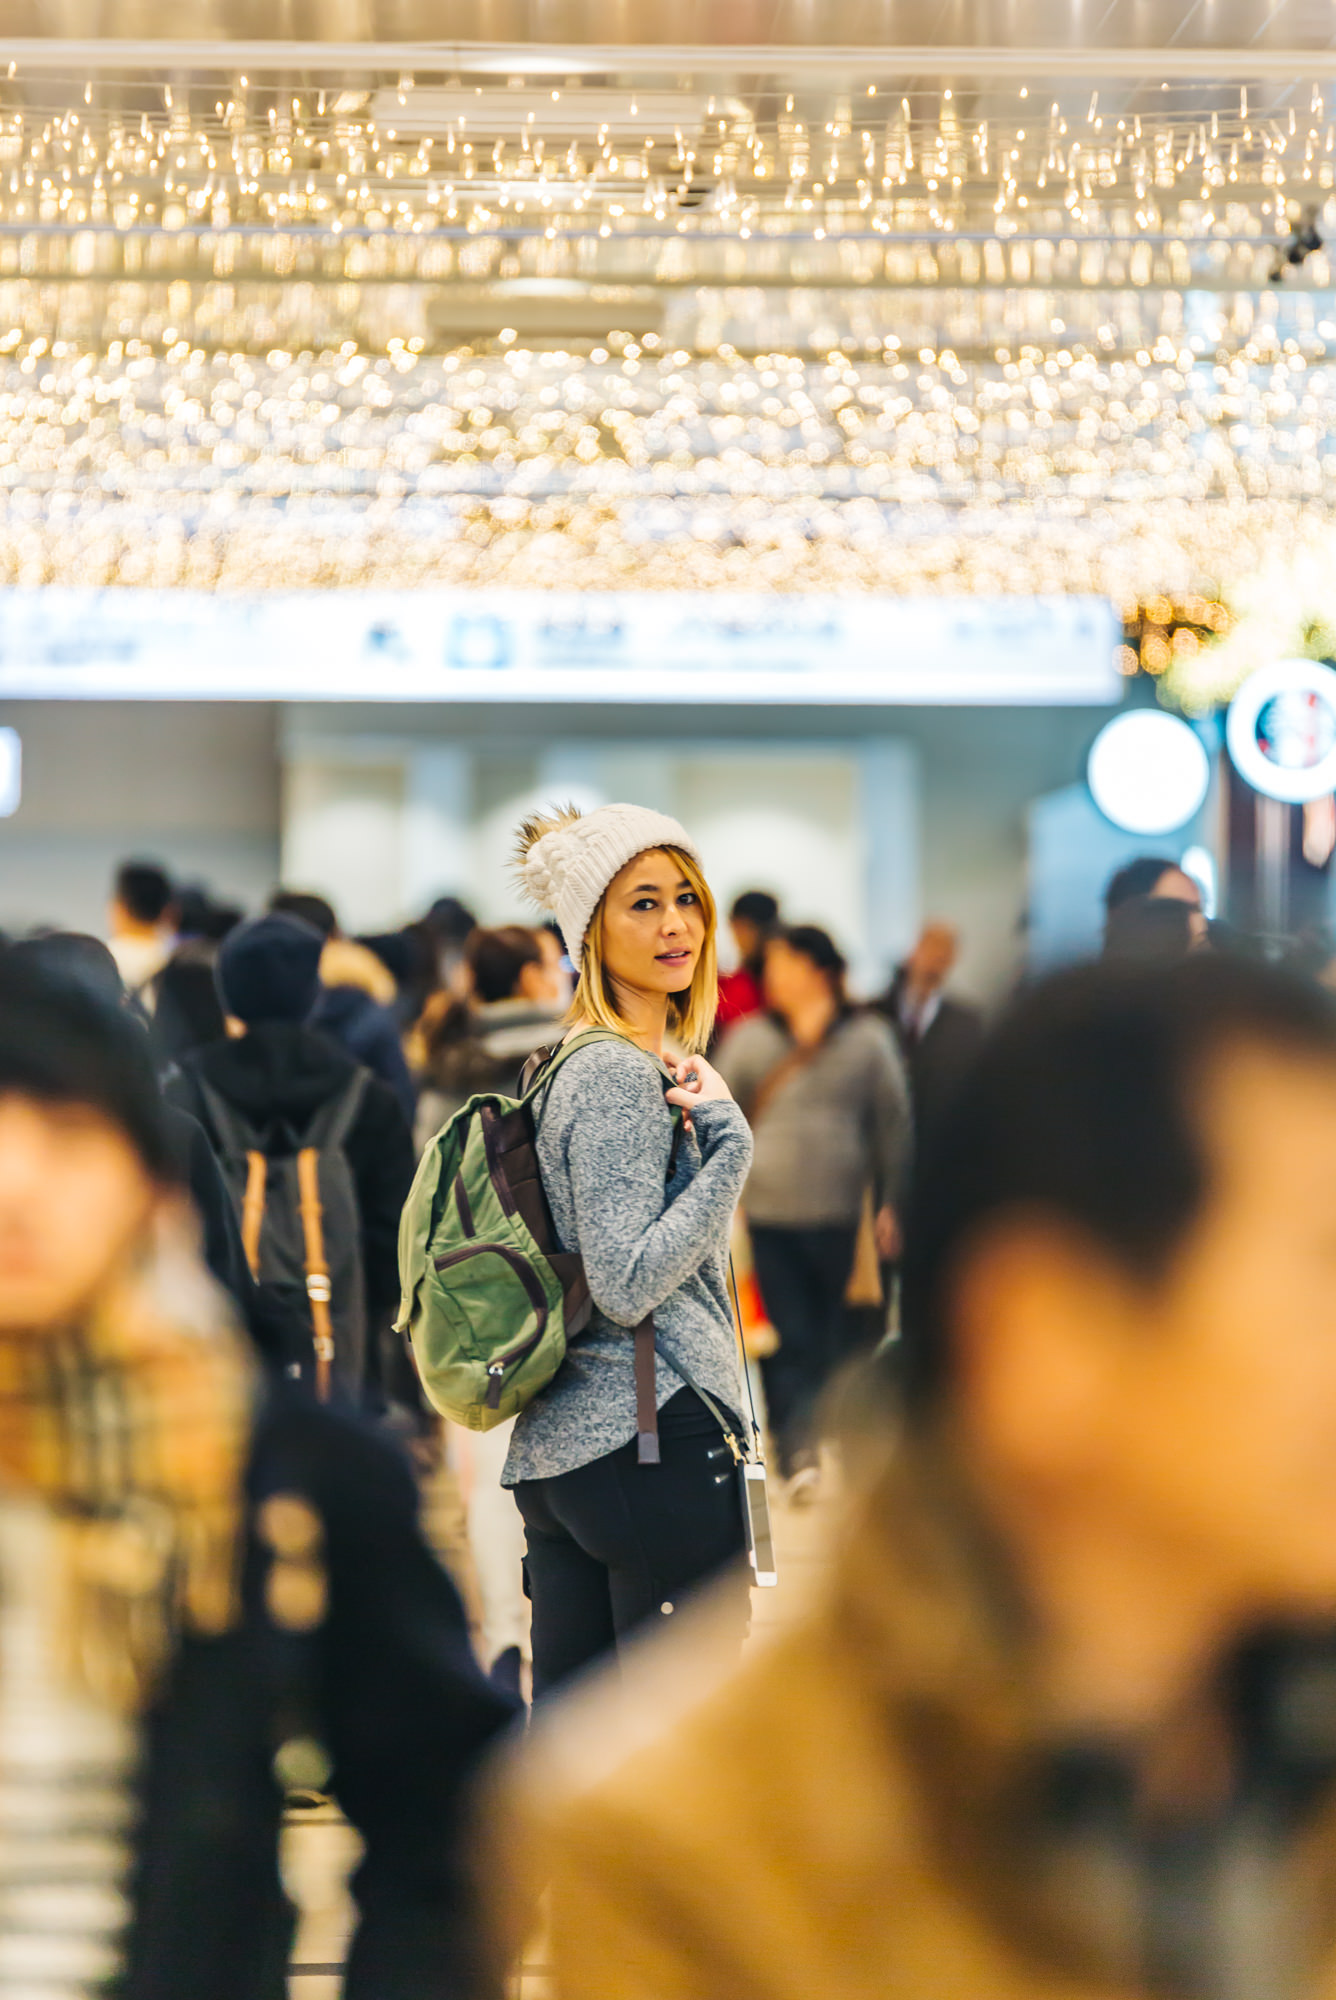 Walking through the busy Tokyo station